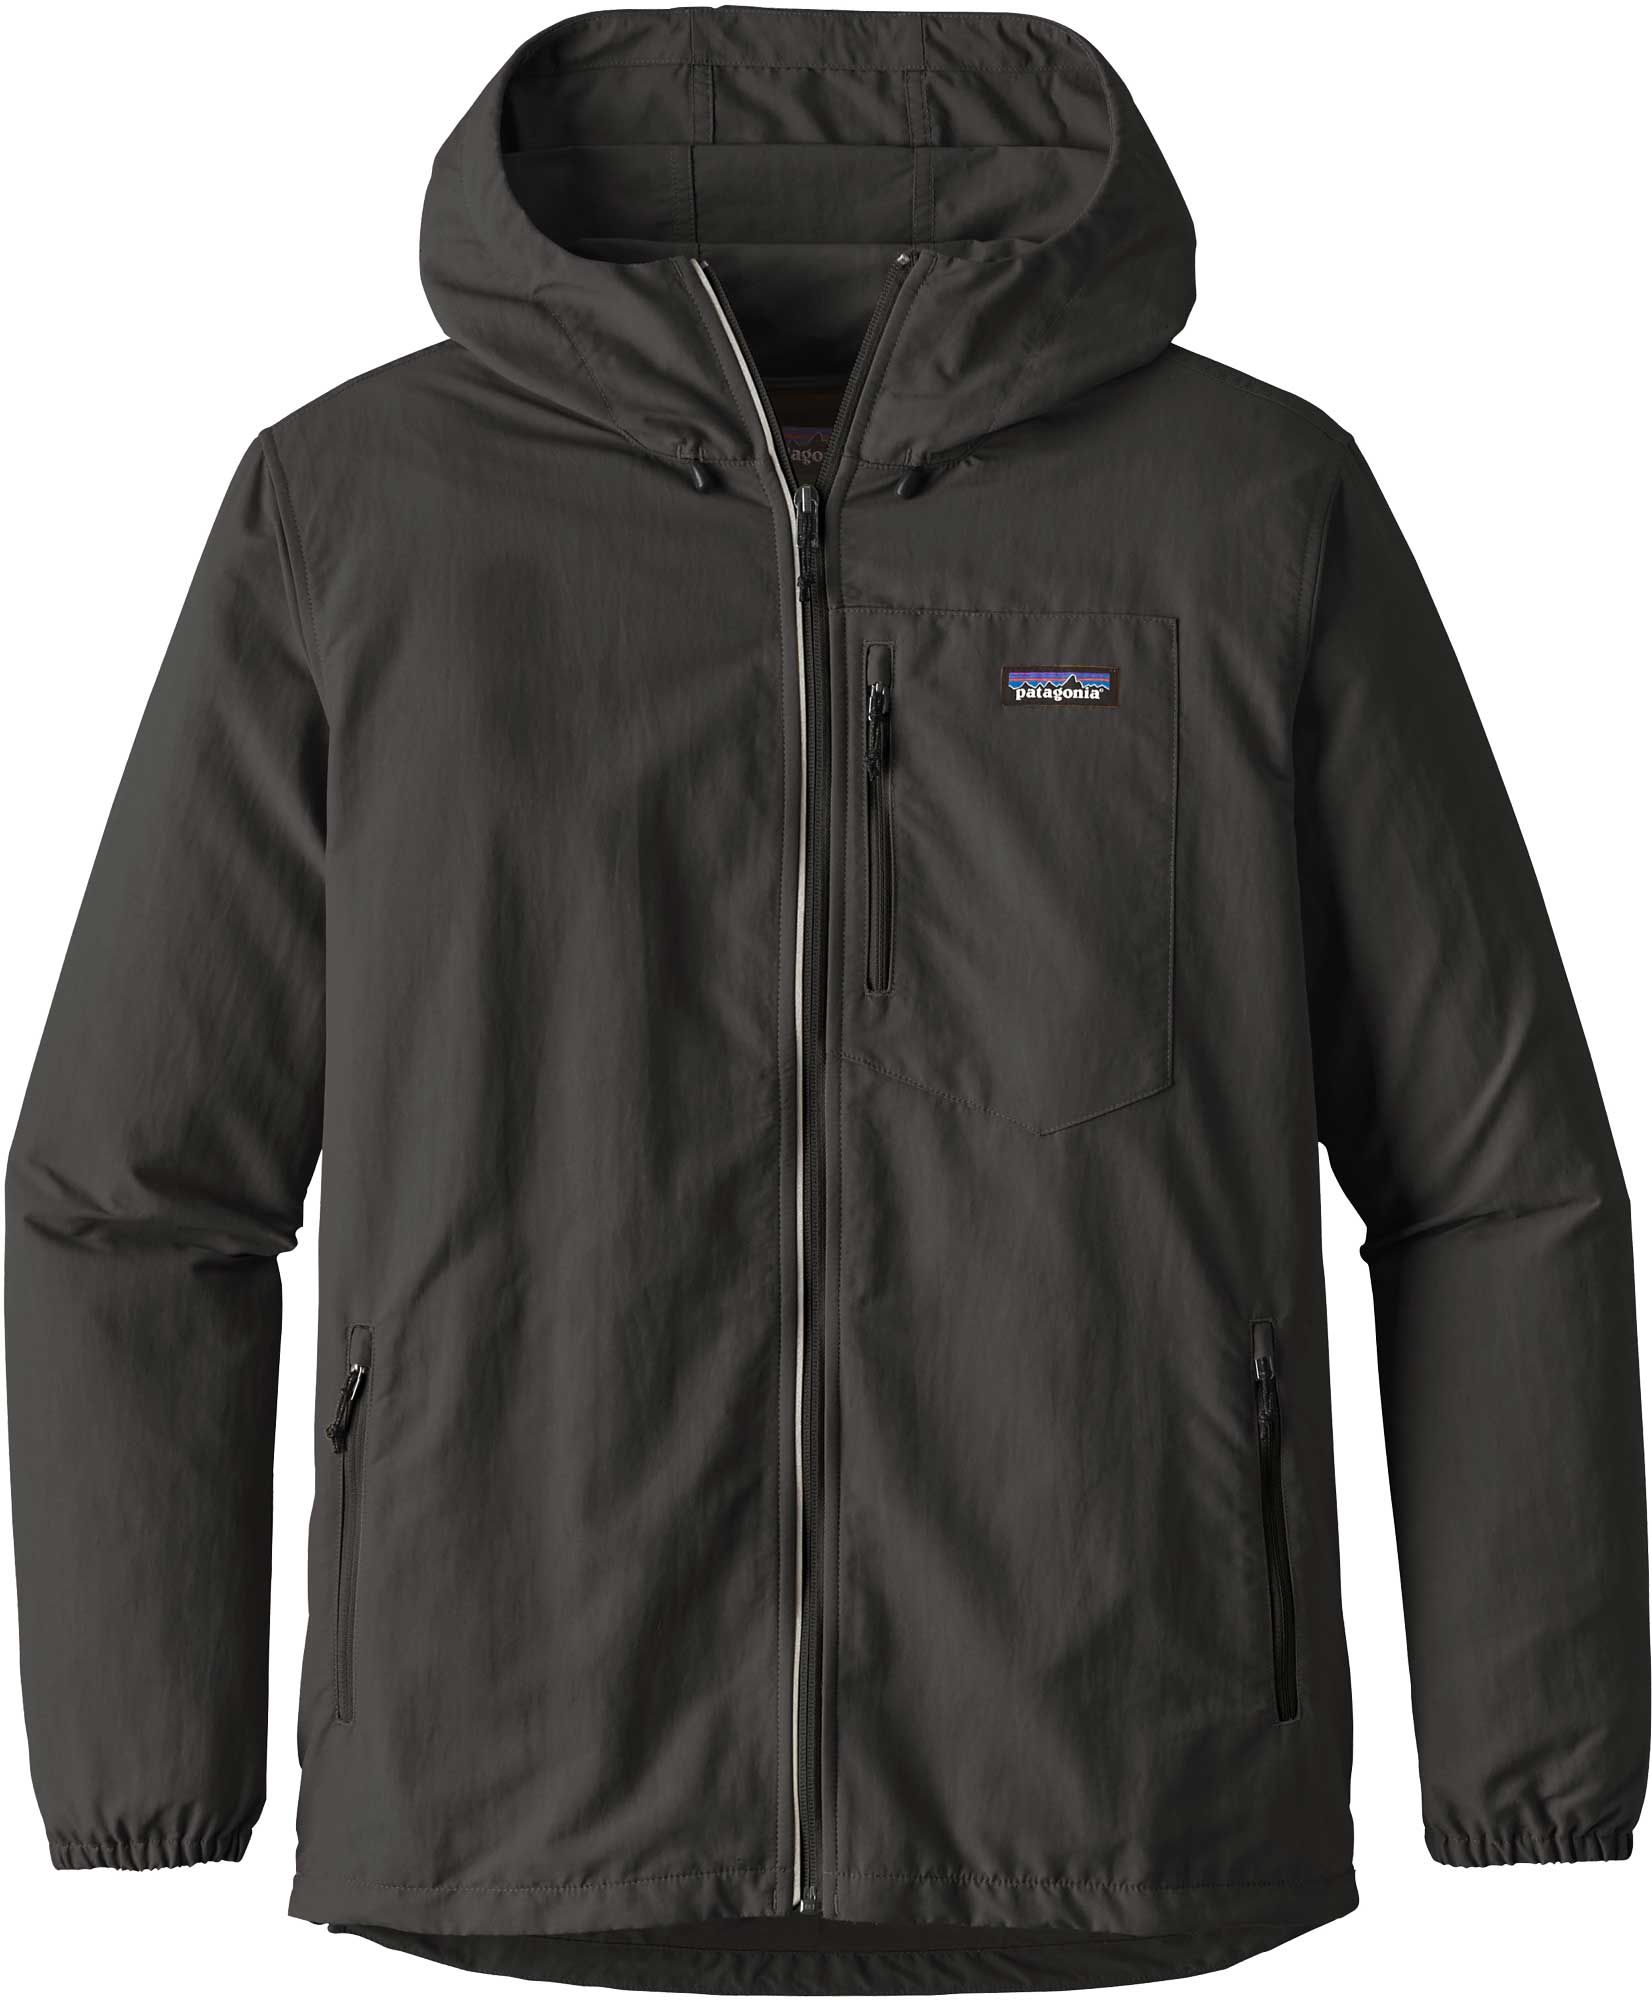 Patagonia Men's Tezzeron Rain Jacket | DICK'S Sporting Goods